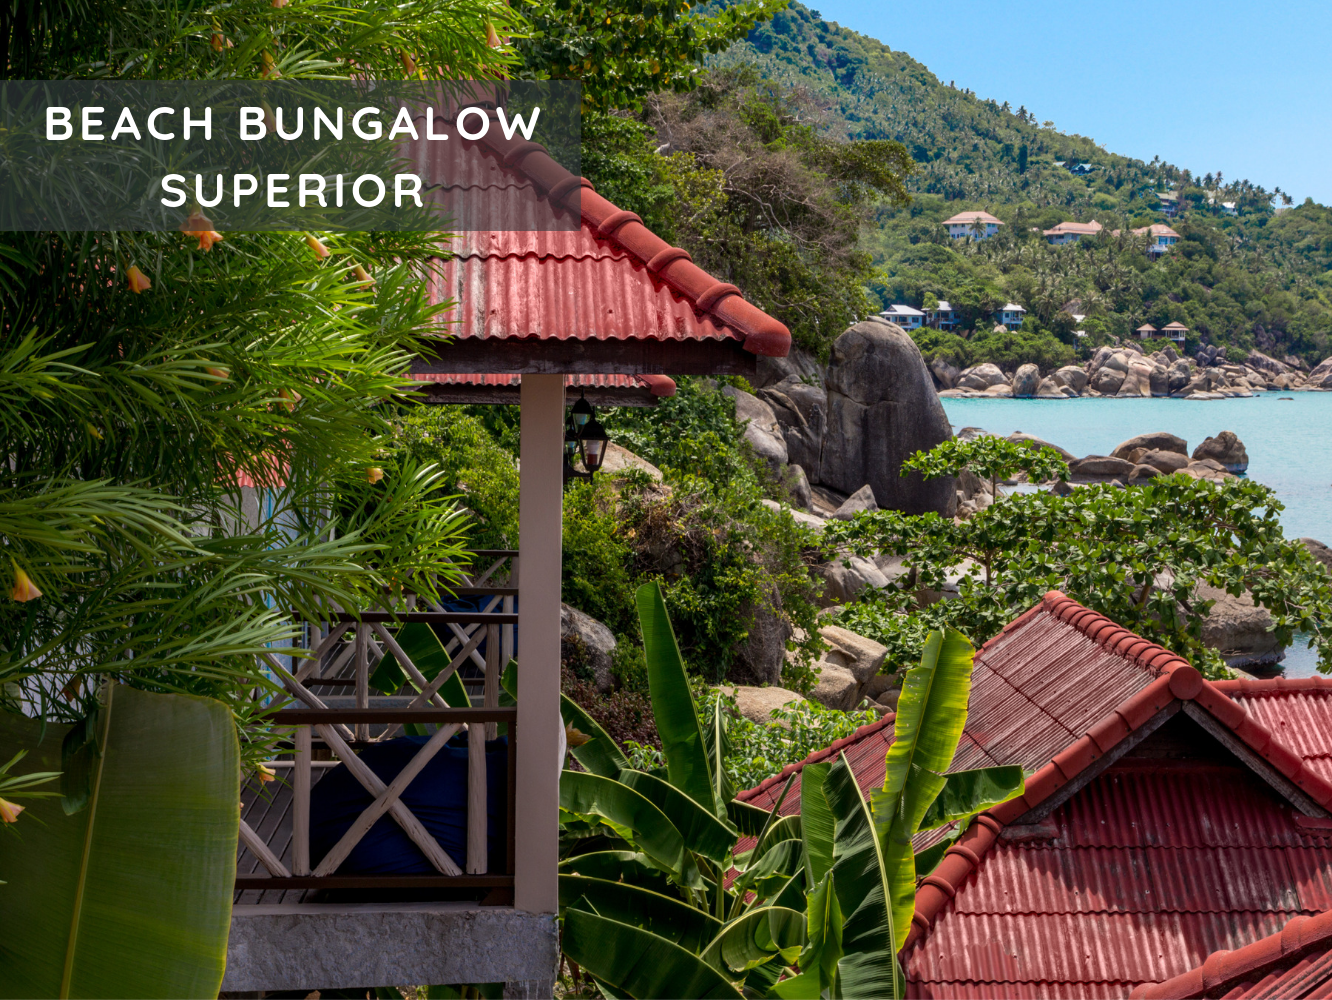 Beach Bungalow Superior